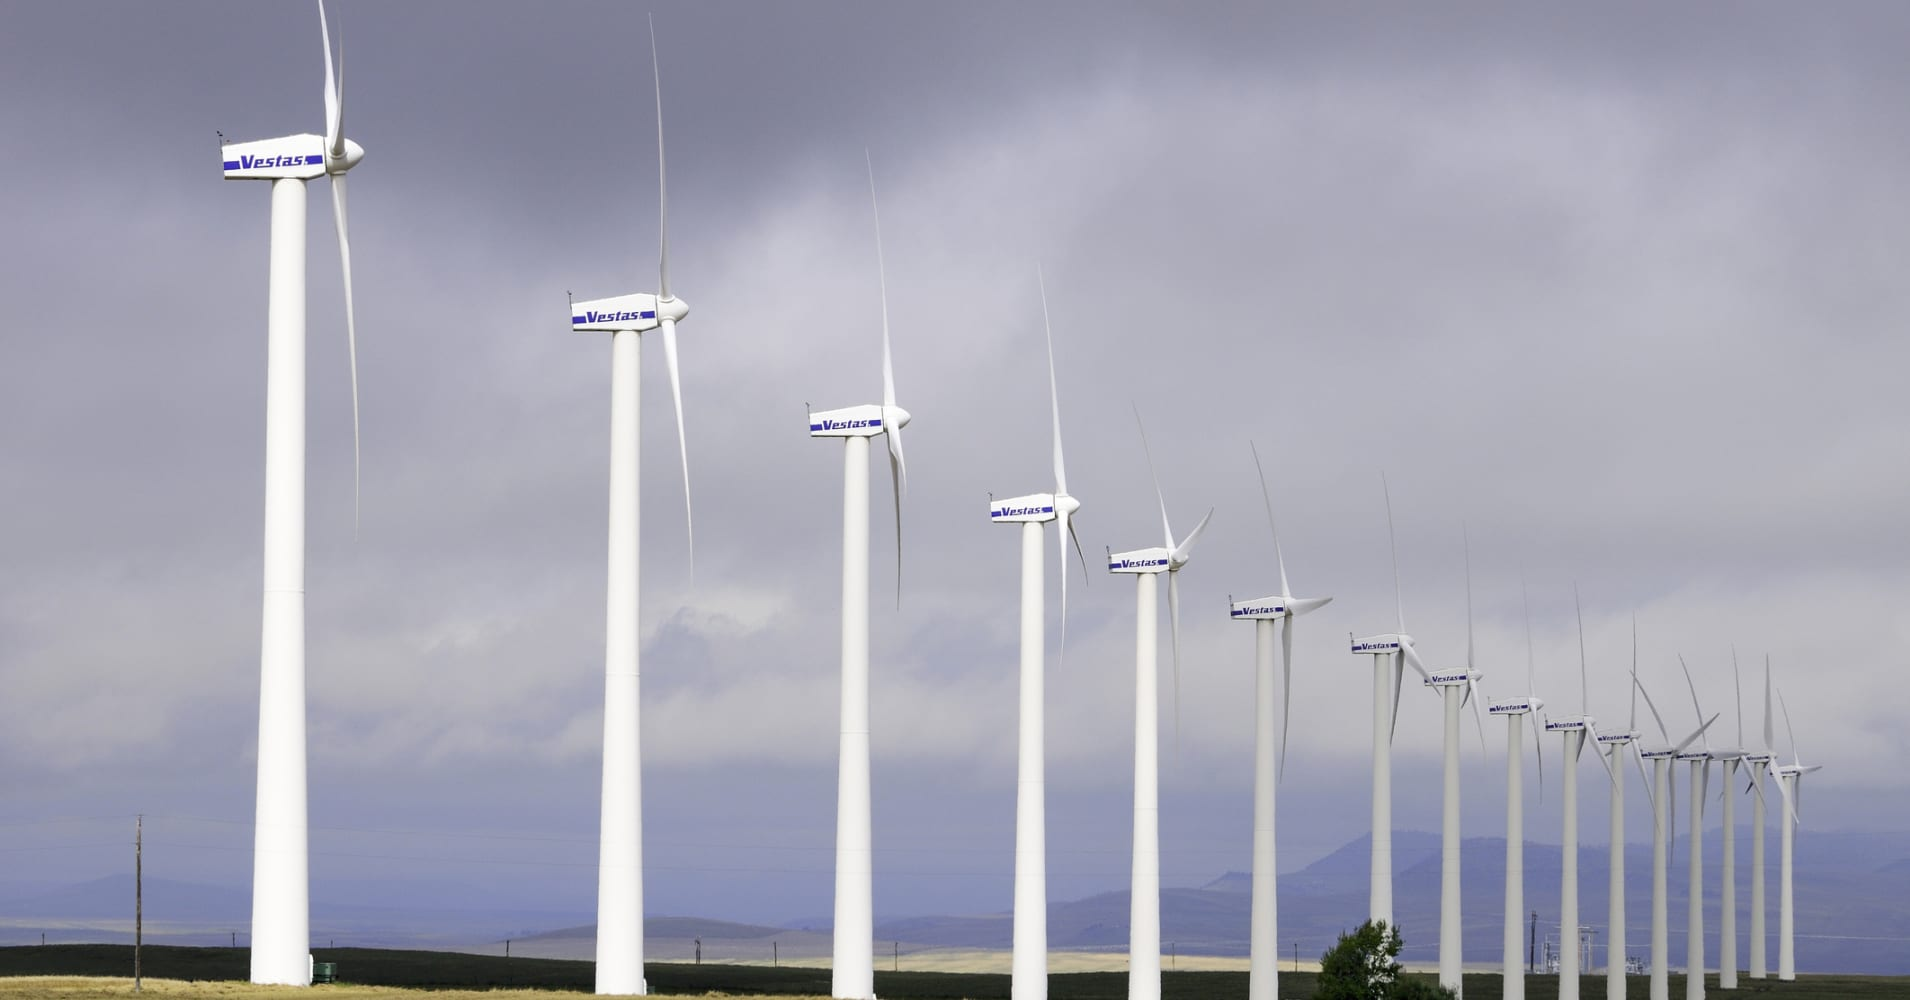 Vestas to cut 400 jobs, mostly in Europe